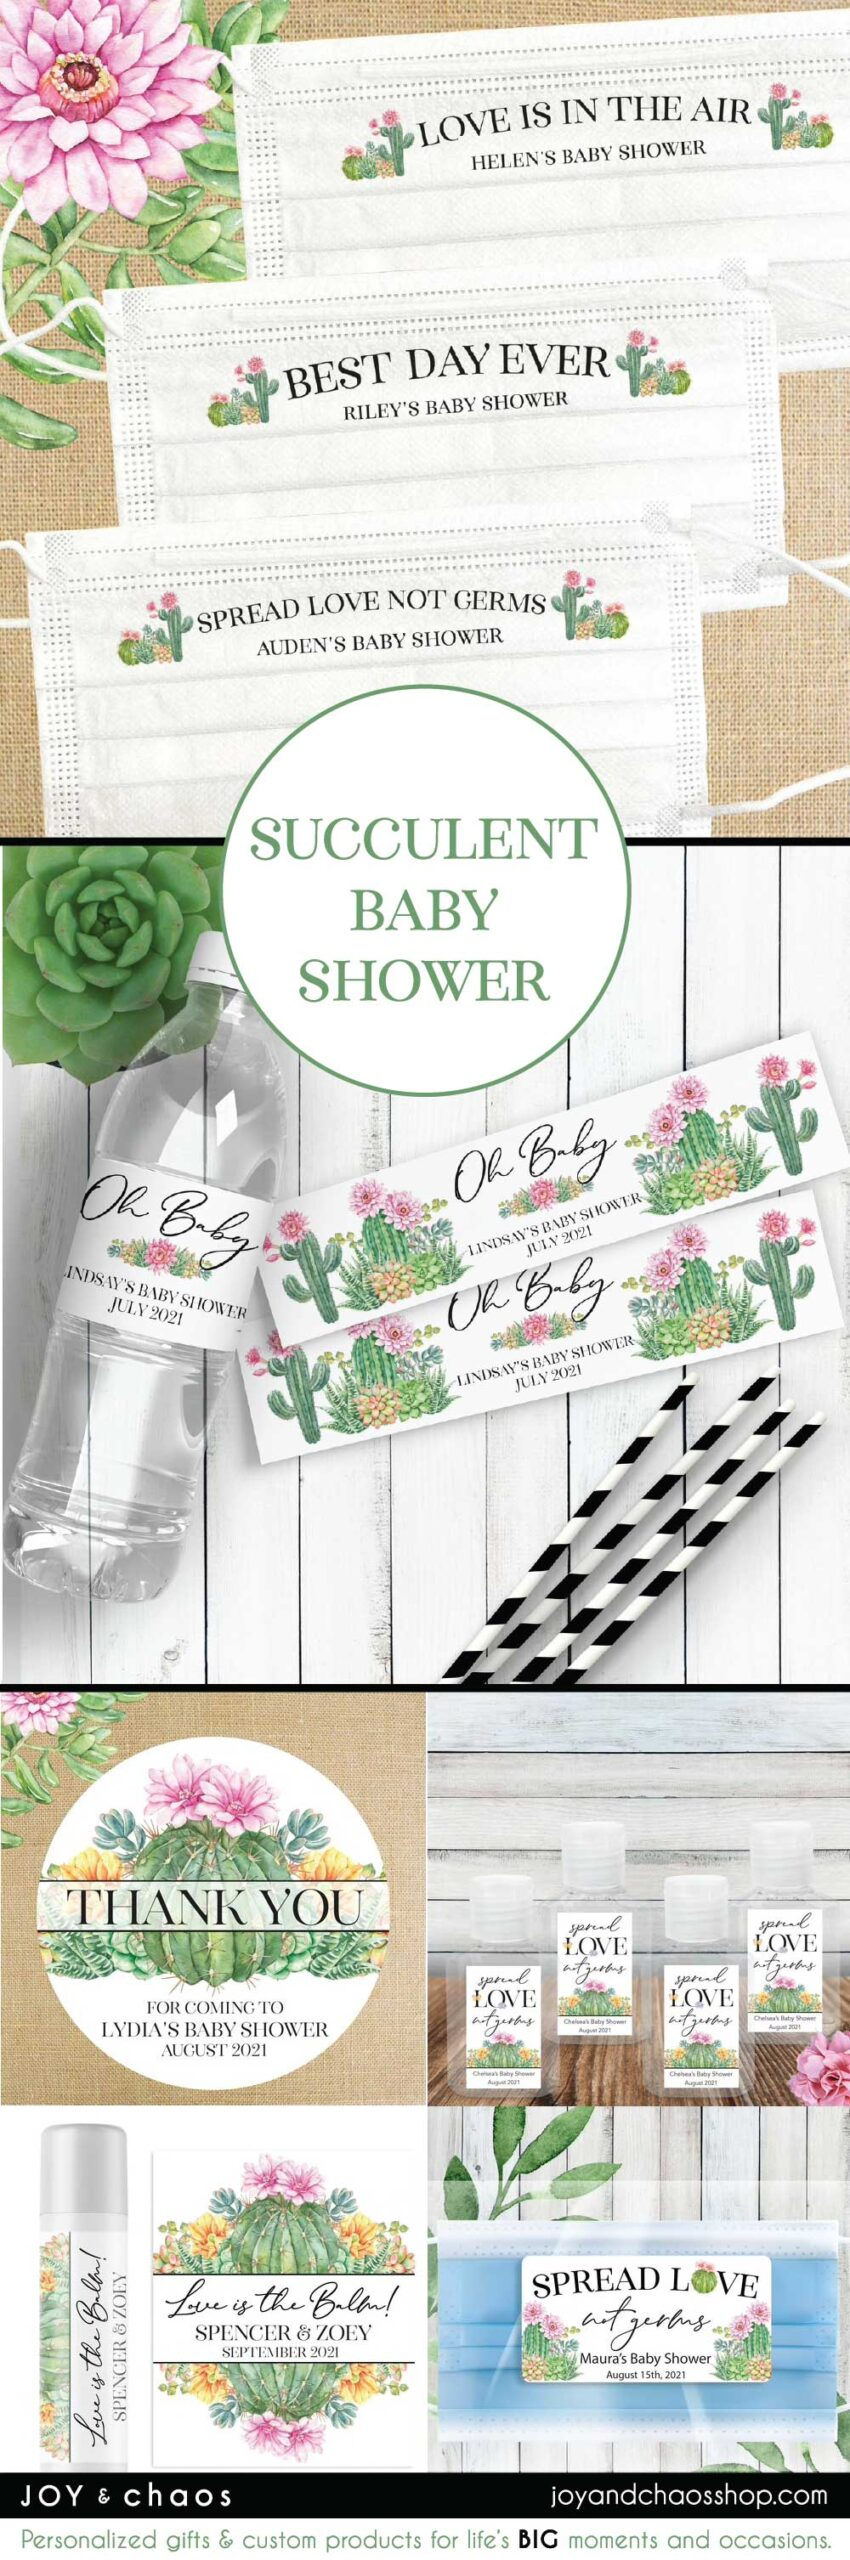 Cactus Succulent Floral Baby Shower Favors and Personalized Party Supplies